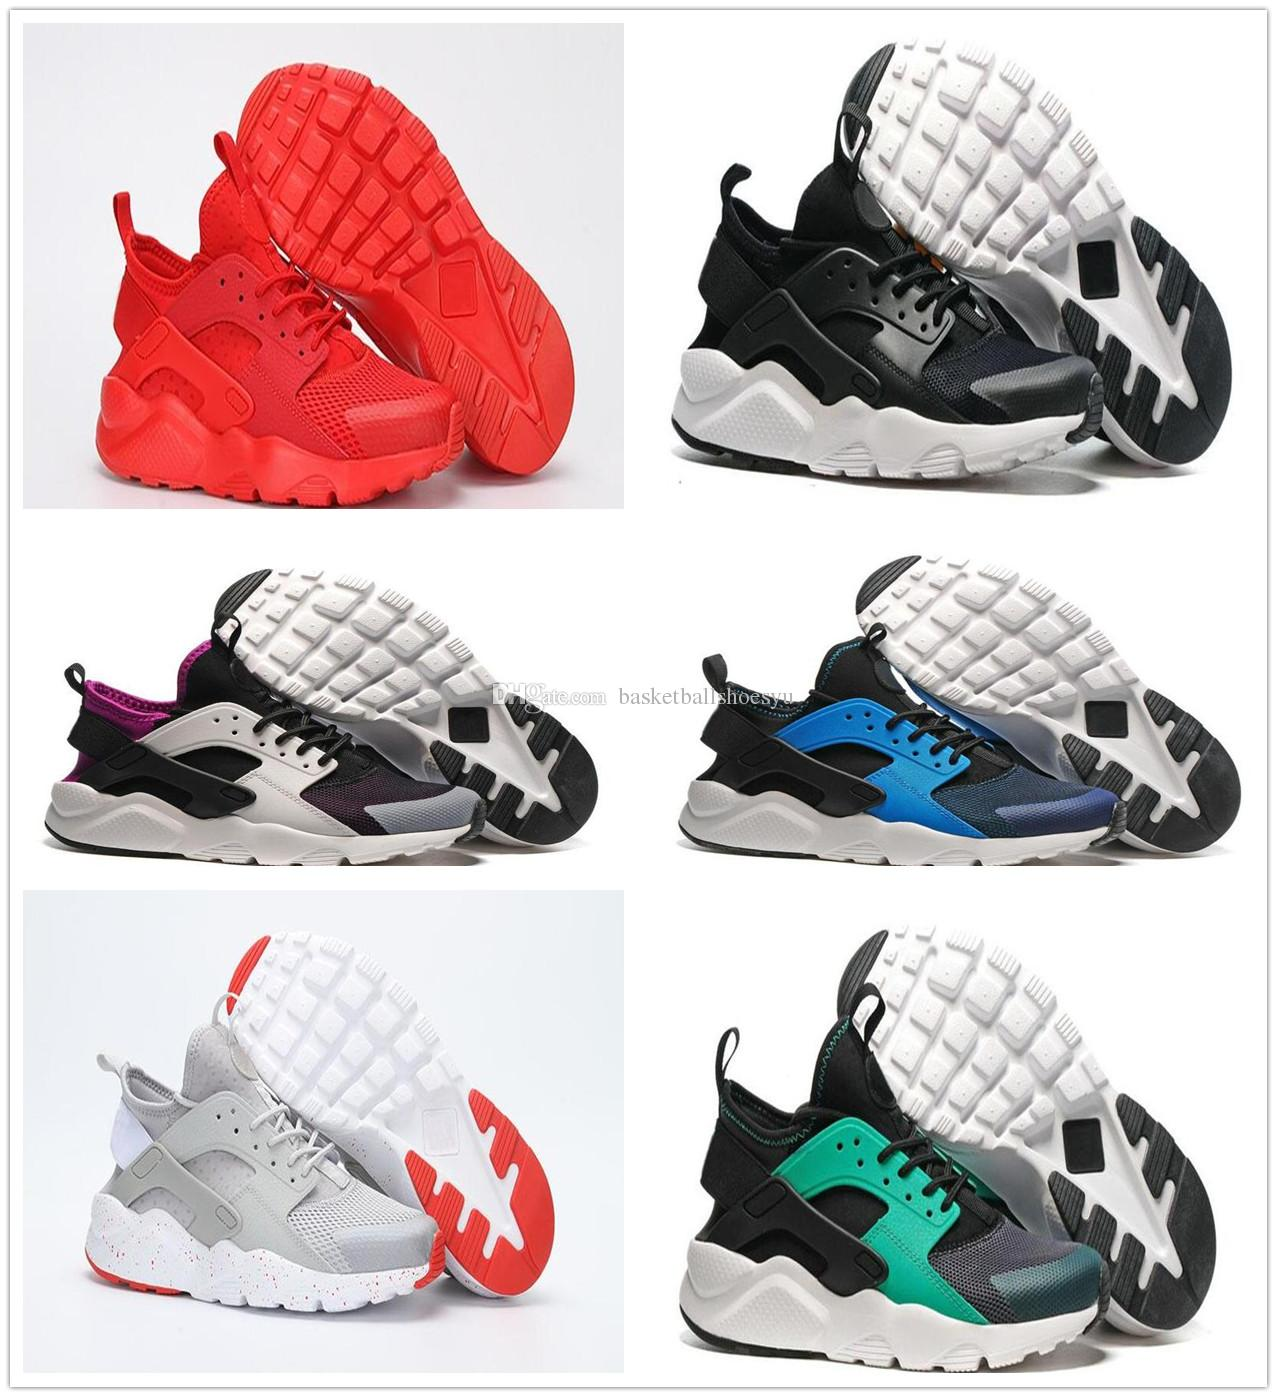 Hot Sale 2018 Cushion Huarache 4 Red Black Shoes White Men Women Huaraches Outdoor High Quality Run Ultra BR Shoes 2015 new online cheap sale best wholesale outlet official tumblr online MU6Lj9MQn